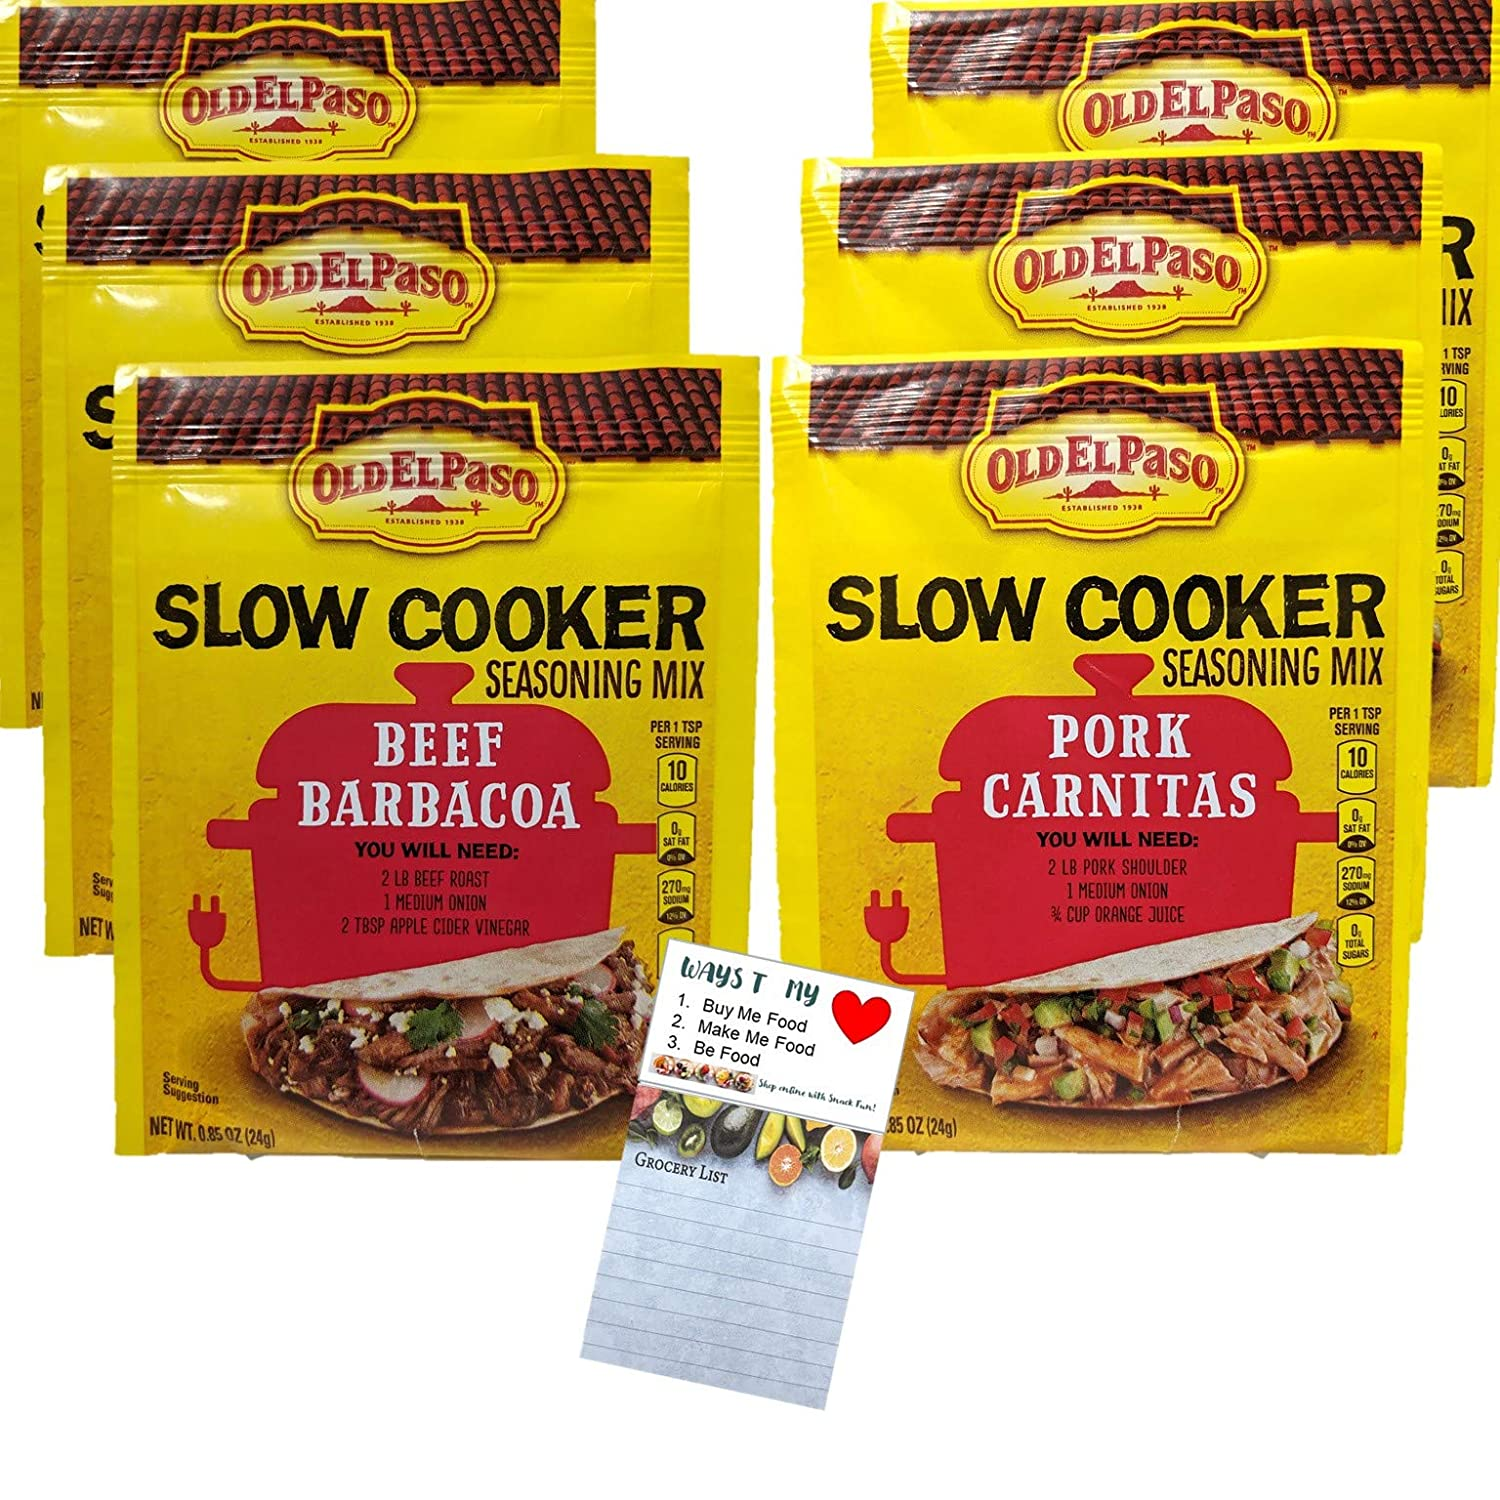 Old El Paso Slow Cooker Seasoning Mix Beef Barbacoa | Pork Carnitas Variety 6 Pack | Snack Fun Sopping List Magnetic Pad | 6 .05 ounce Packets